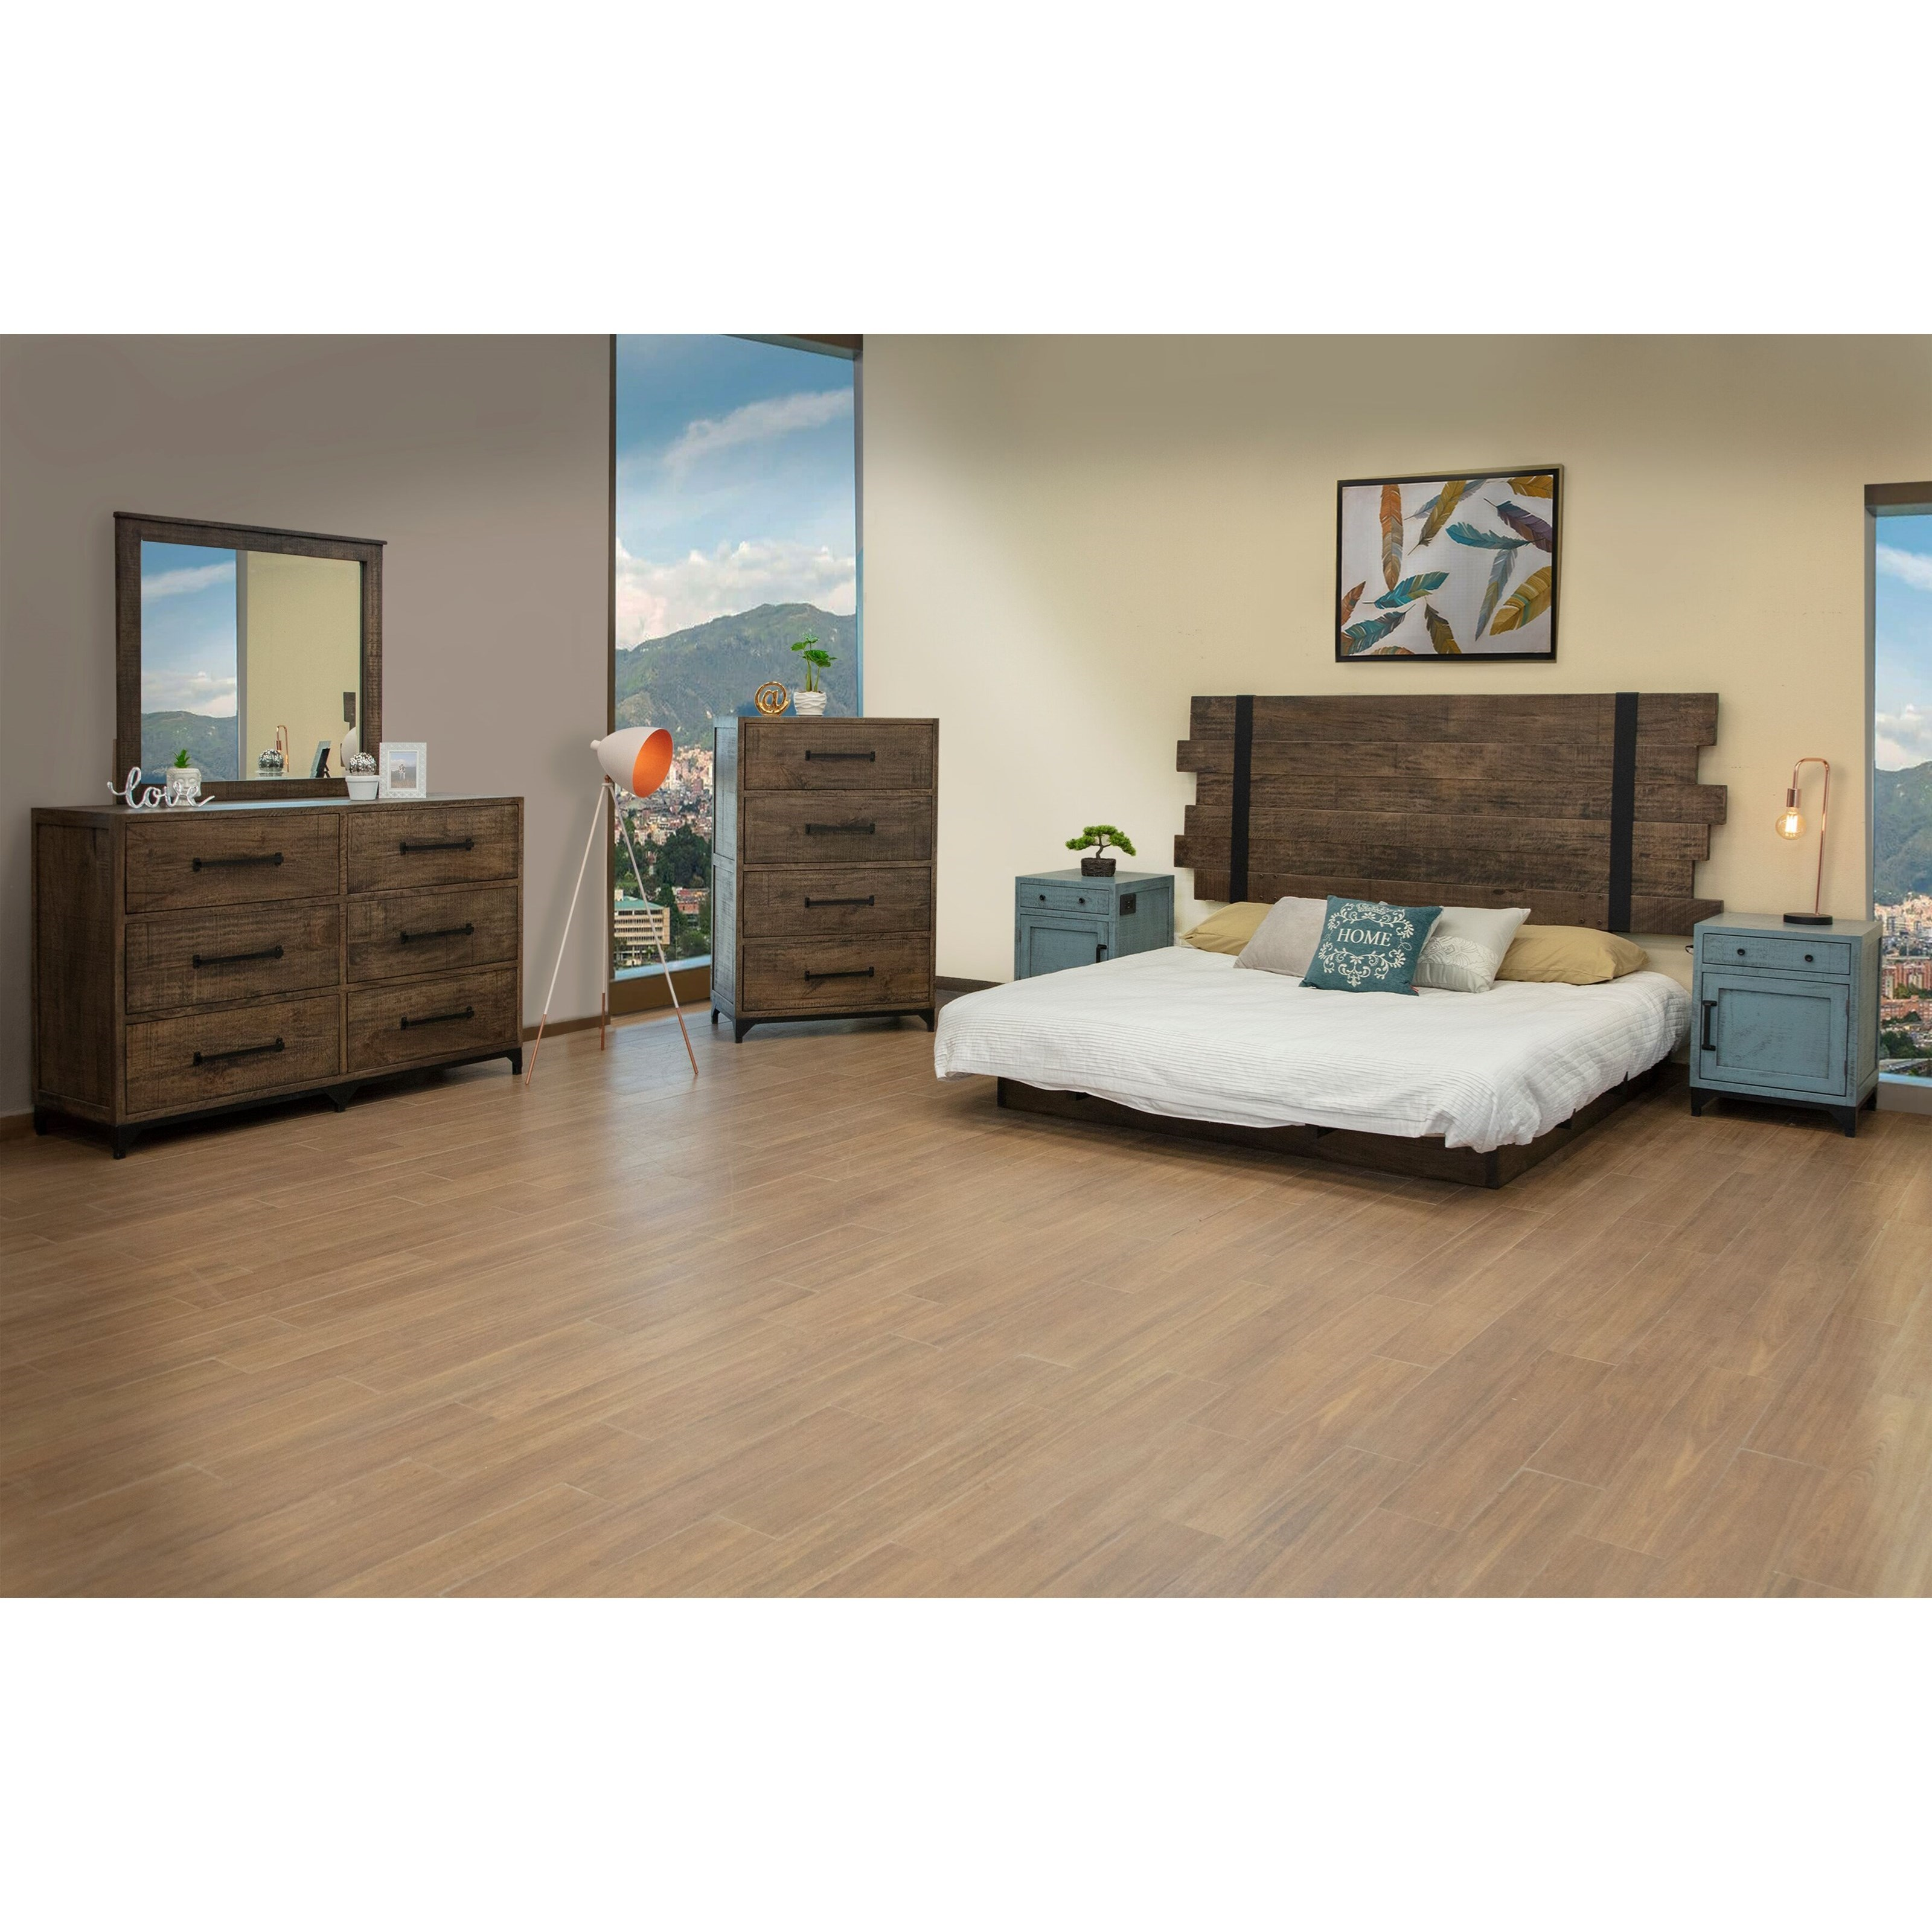 Urban Art King Bedroom Group by International Furniture Direct at Catalog Outlet